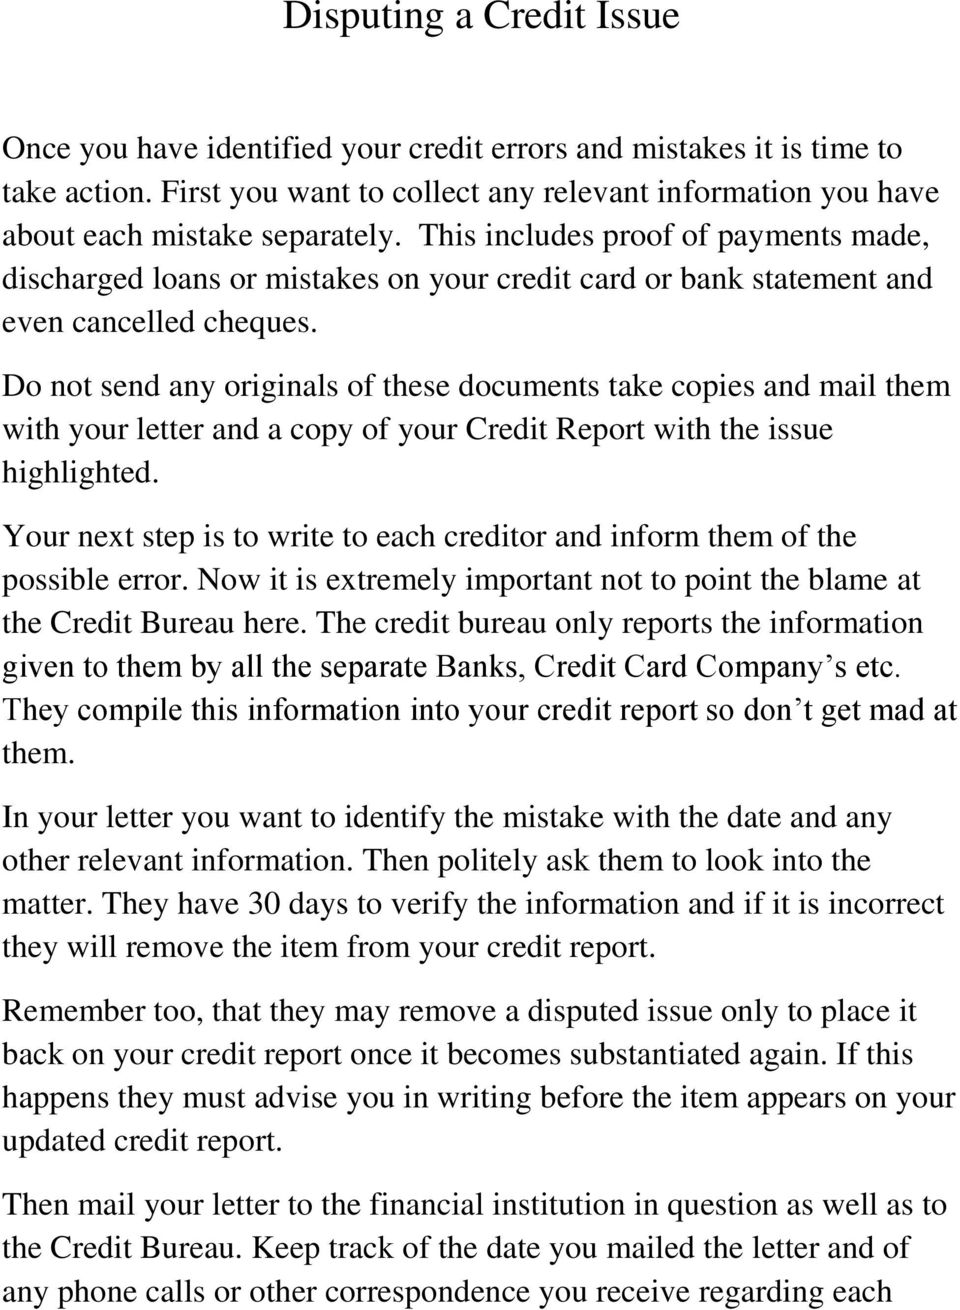 Do not send any originals of these documents take copies and mail them with your letter and a copy of your Credit Report with the issue highlighted.